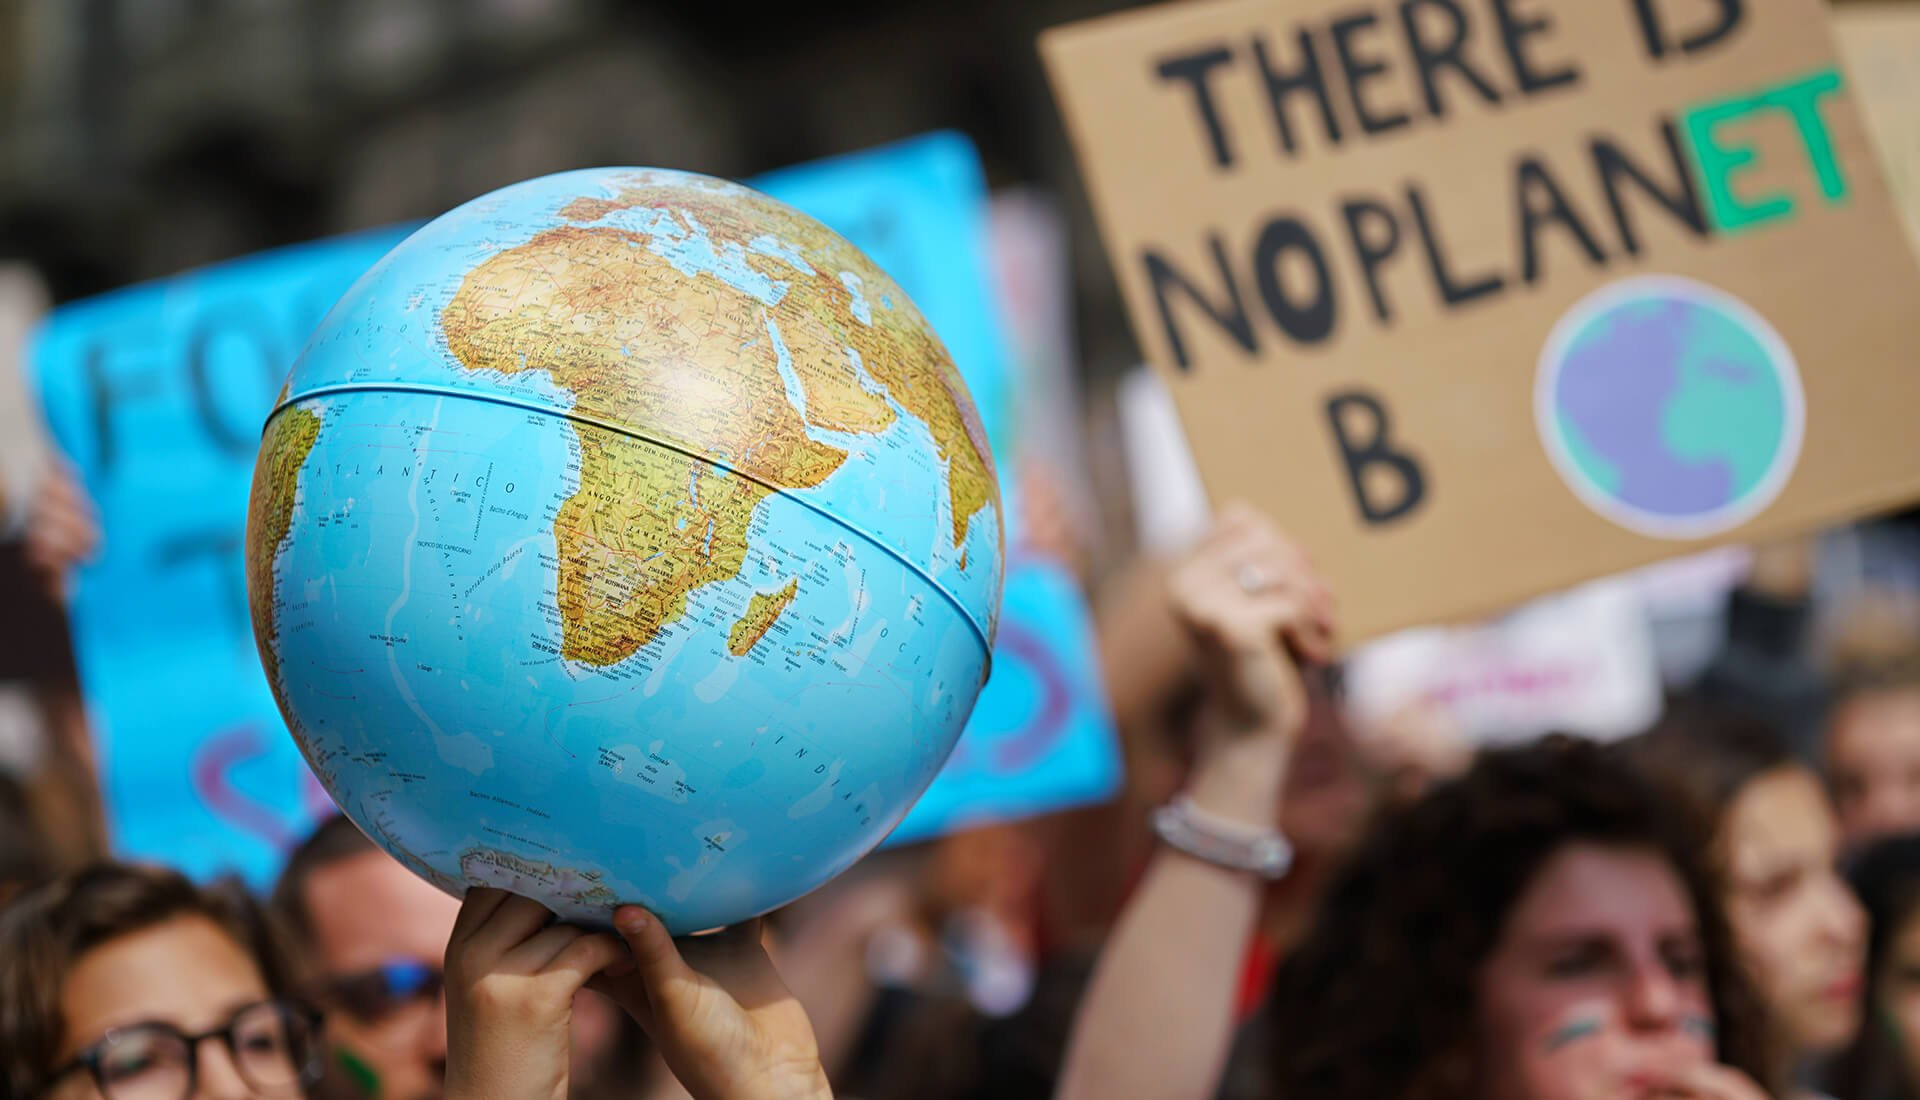 The Green Movement and Gen Z